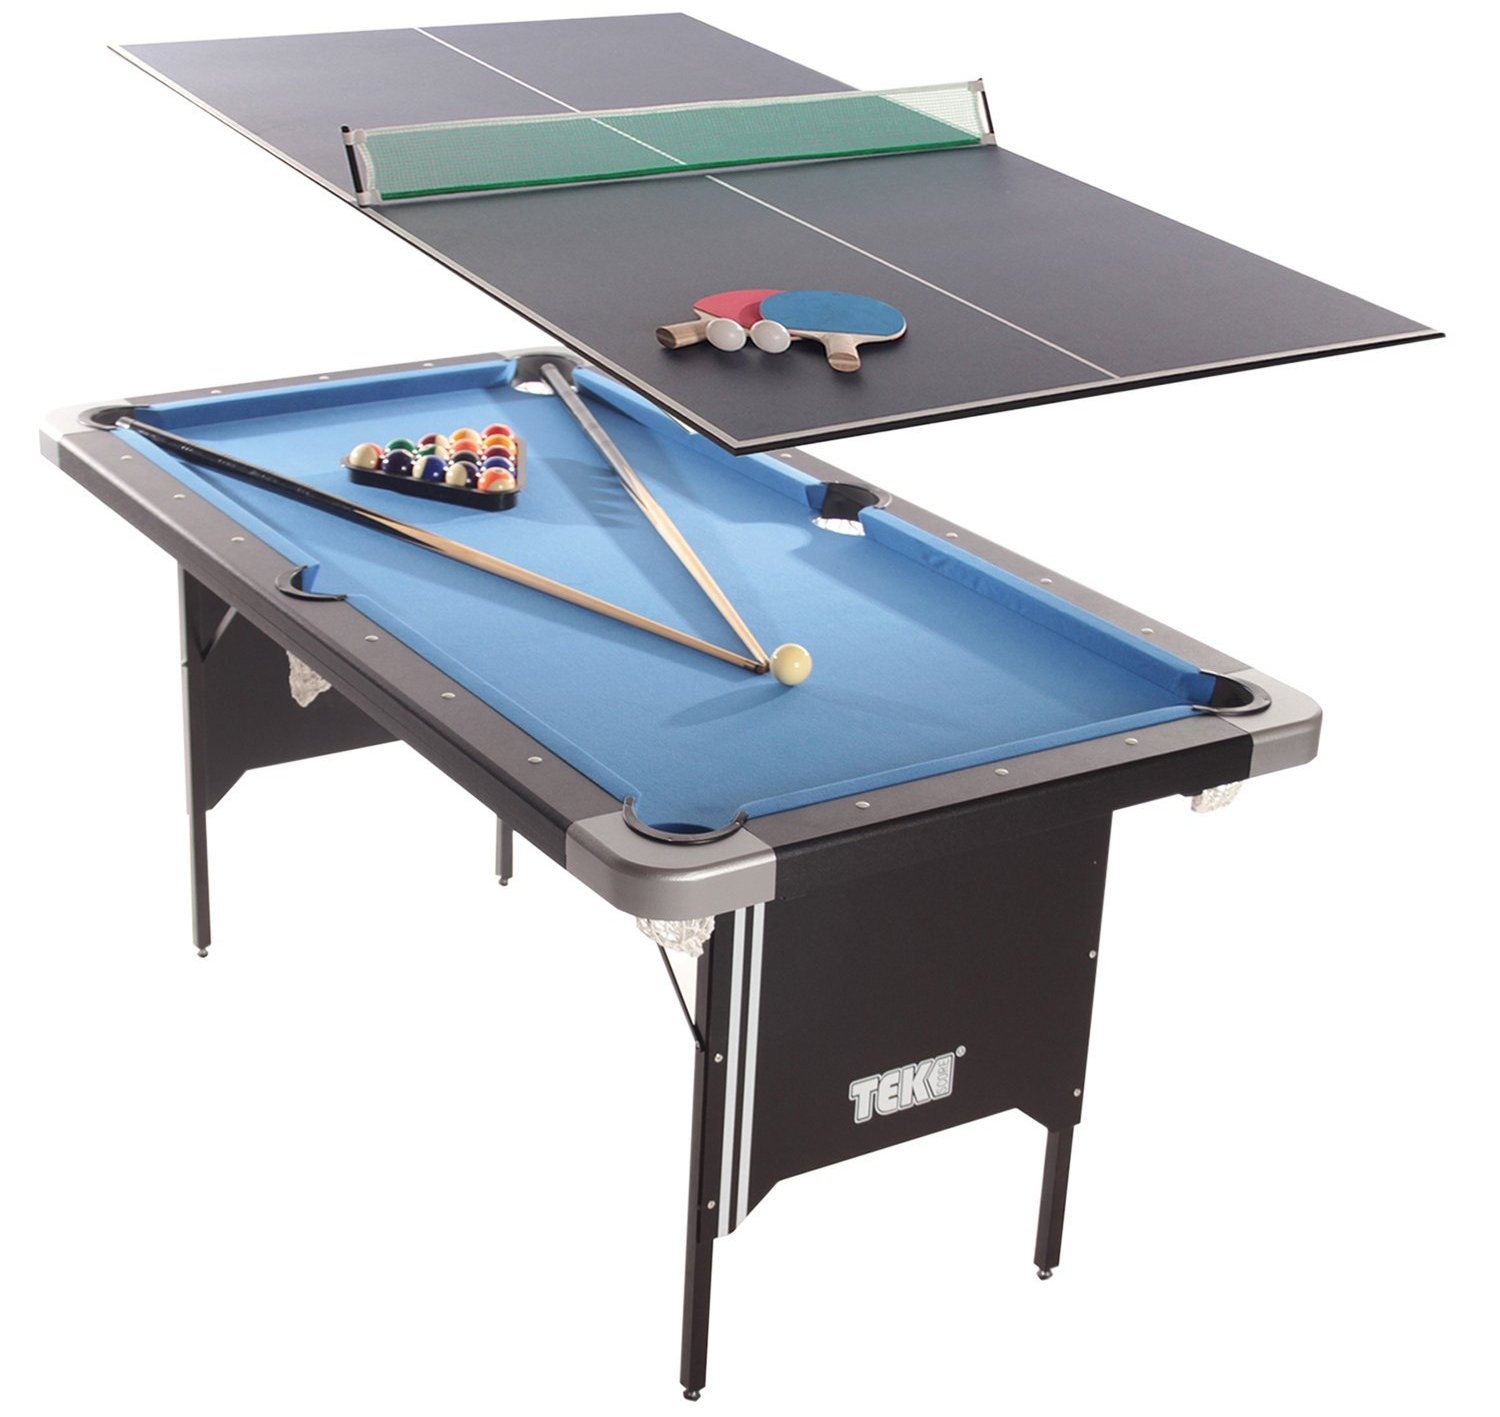 Top 5 Best Folding Pool Table Reviews For 2017